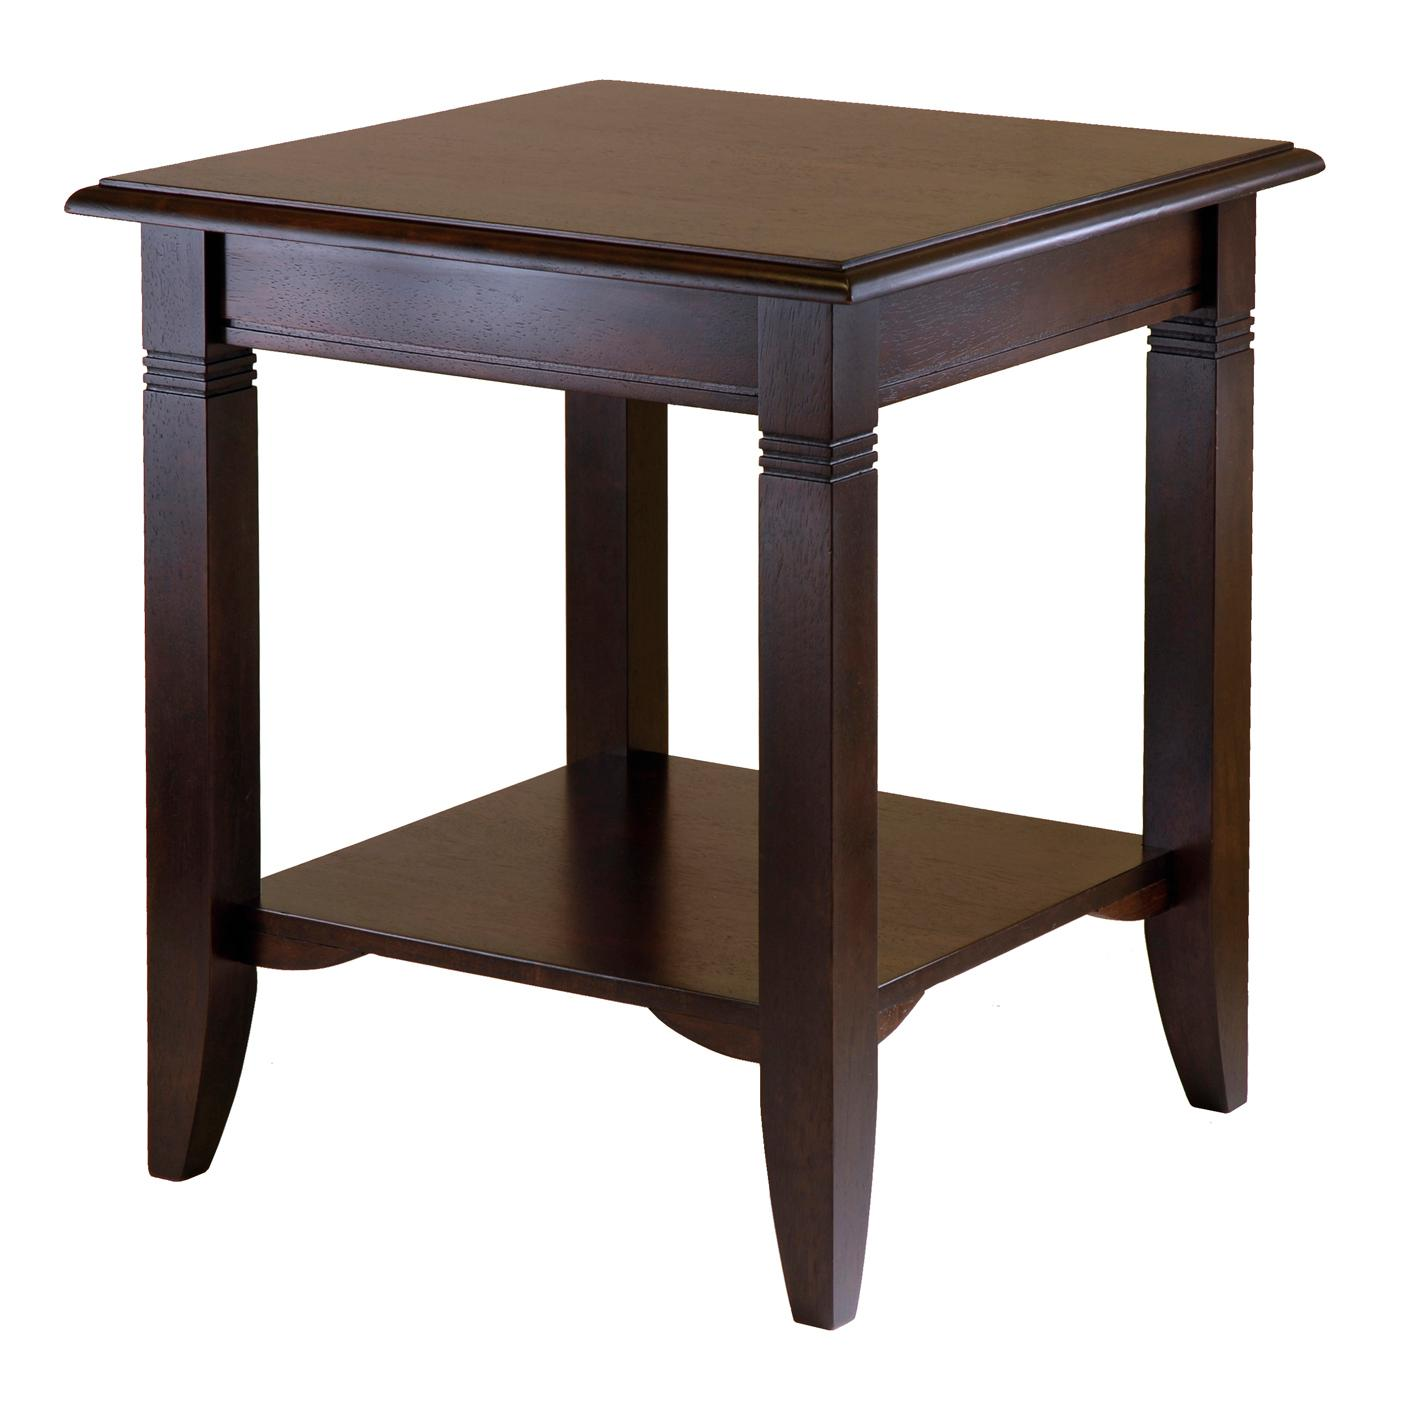 Amazon.com: Winsome Wood Nolan End Table: Kitchen & Dining